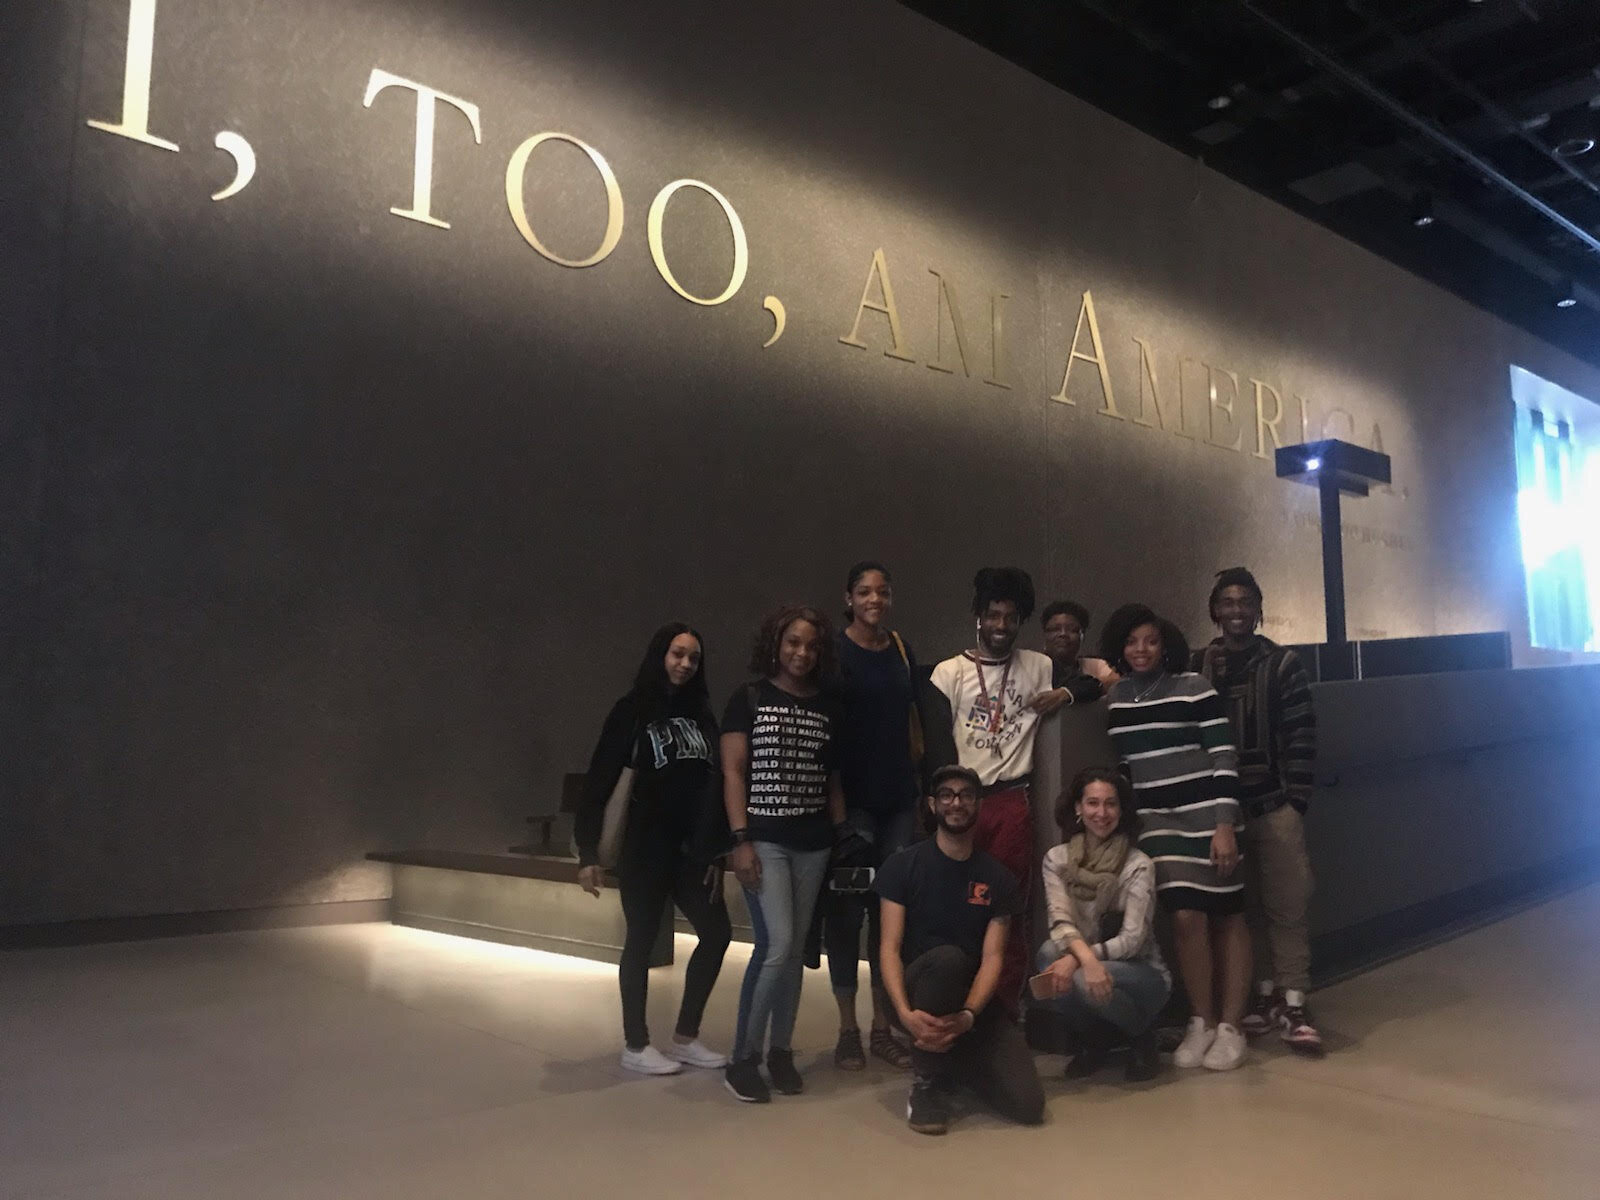 National Museum of African American History and Culture, Washington, D.C, Spring 2019